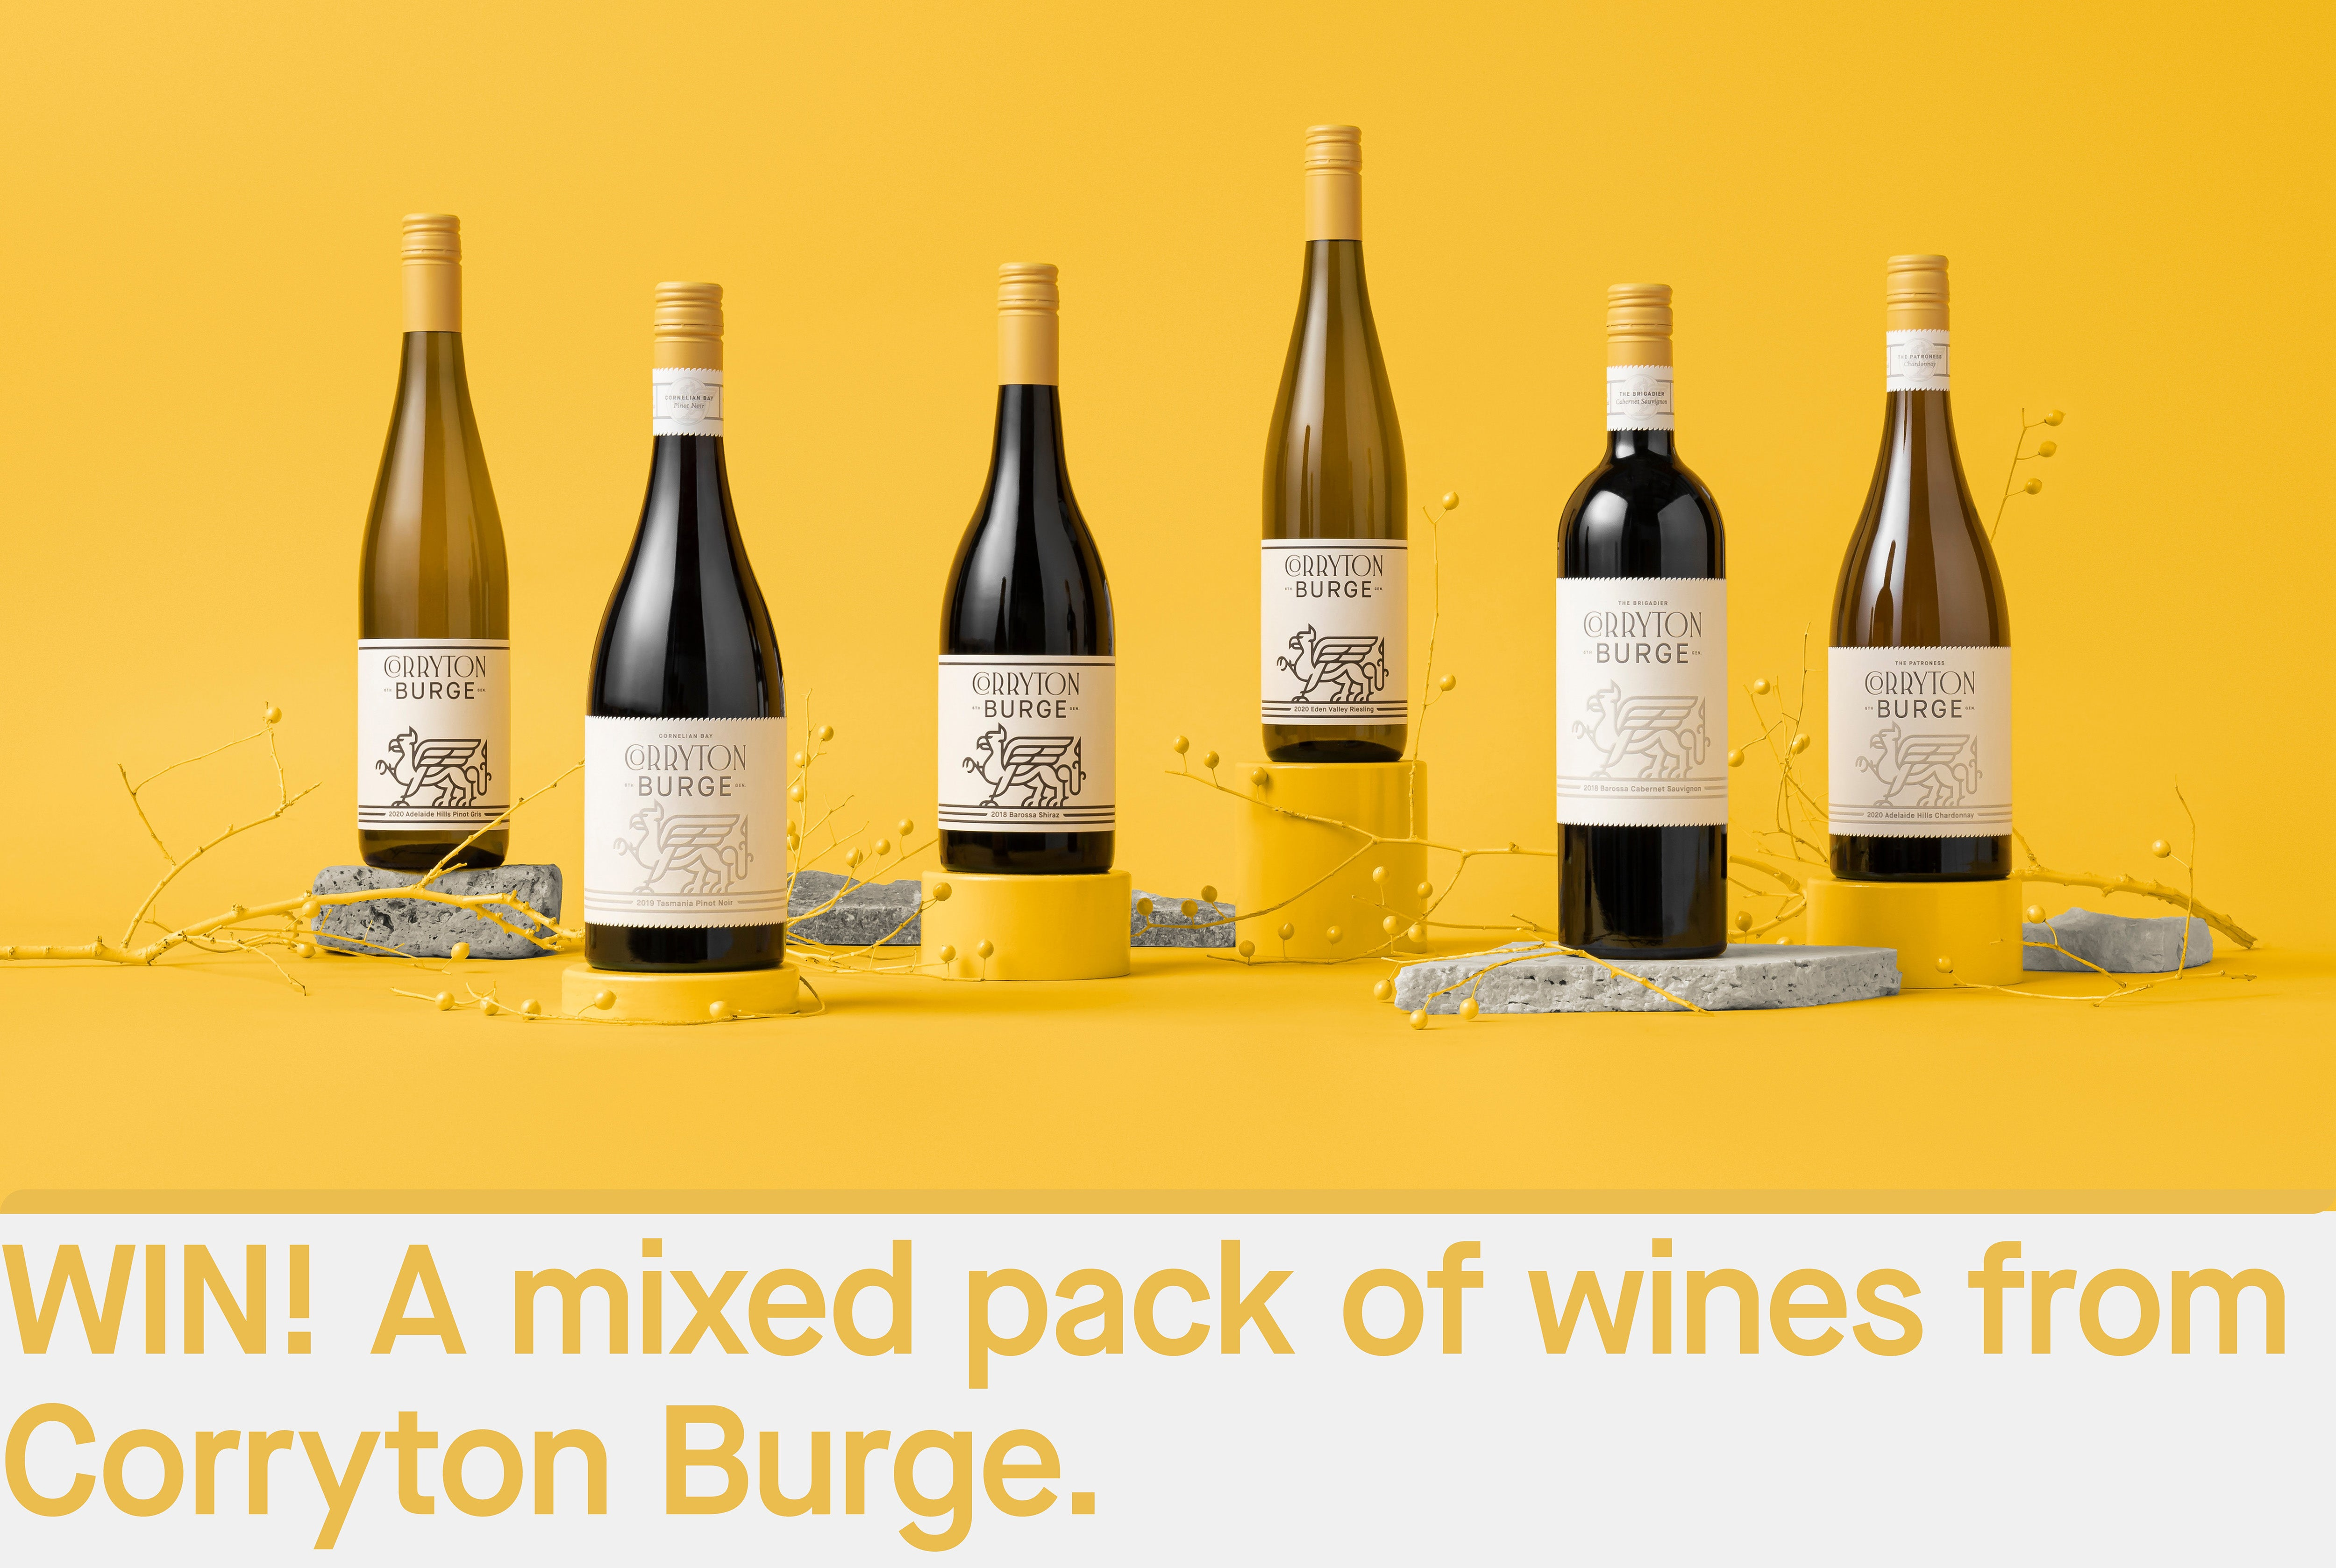 Corryton Burge Win A Mixed Pack of Wines